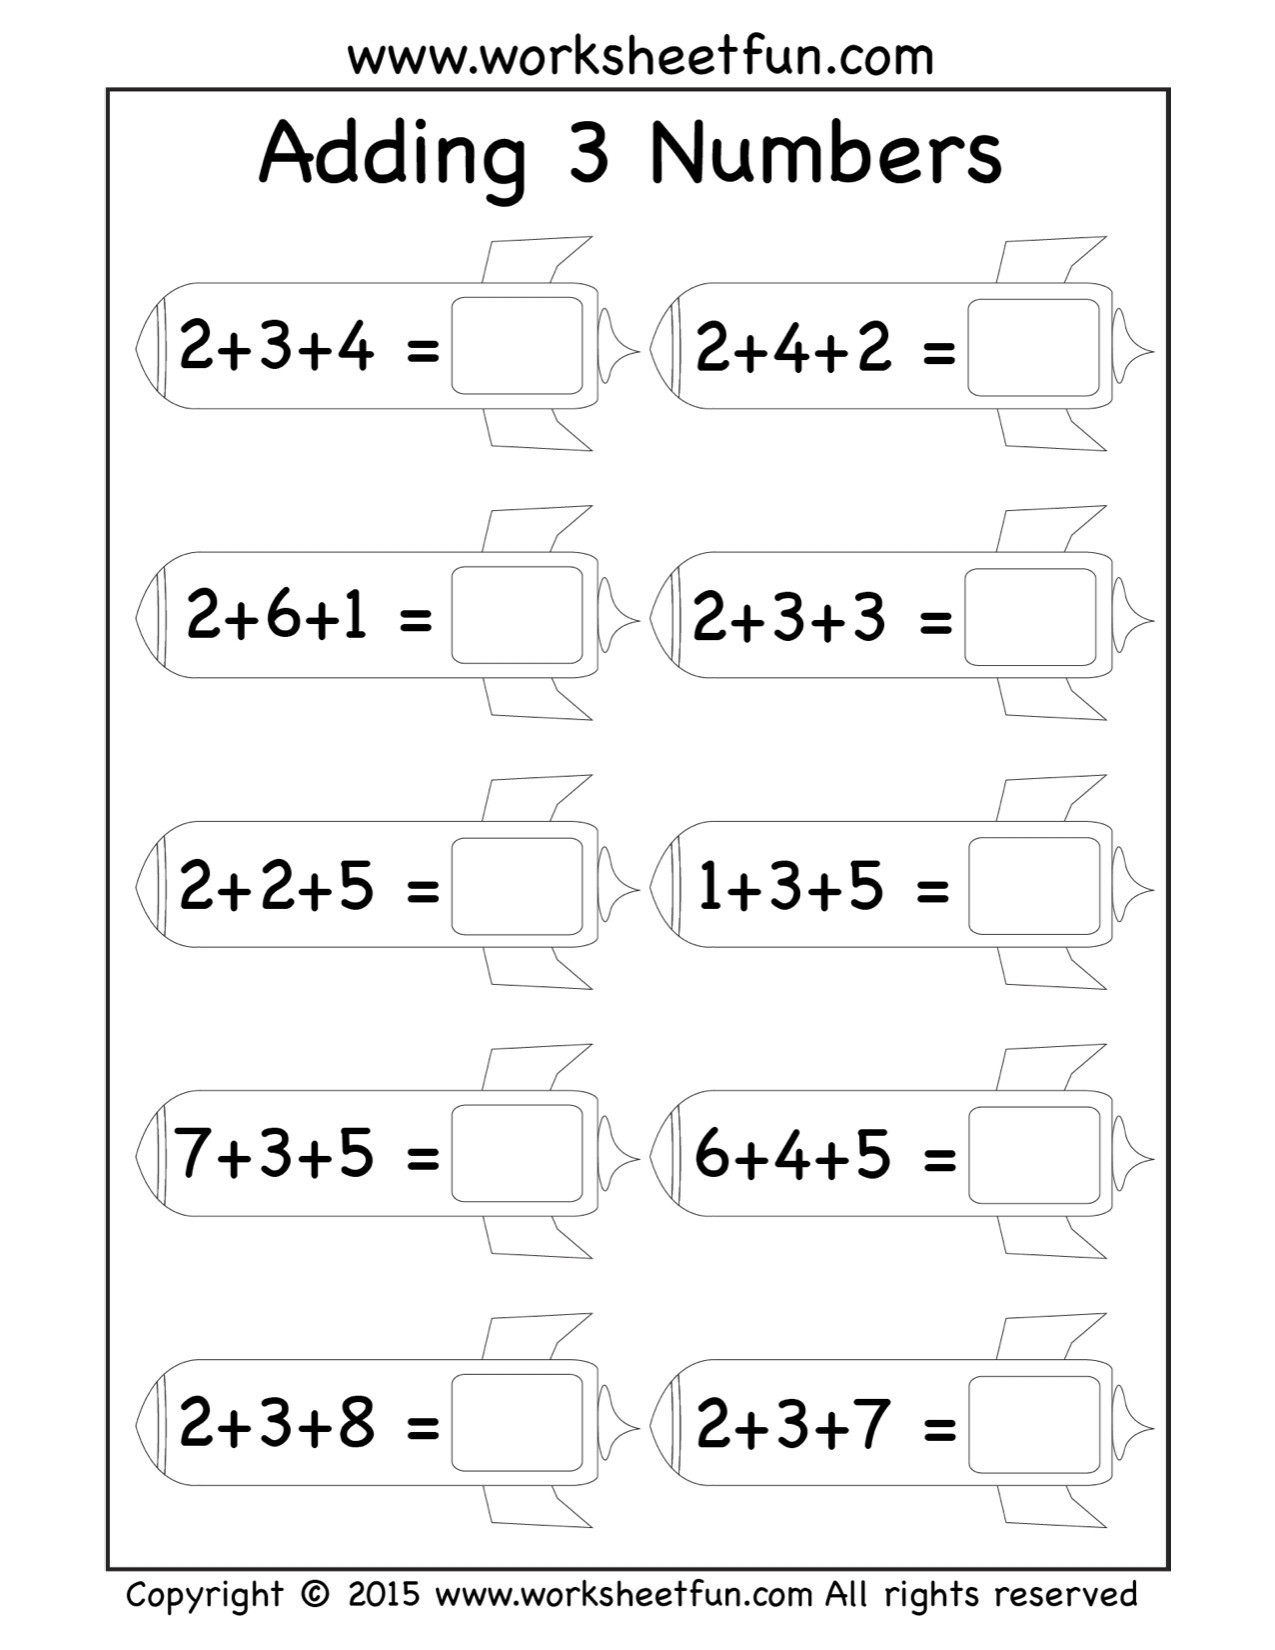 Missing Addend Worksheets 1st Grade 5 Free Math Worksheets First Grade 1 Addition Add 2 Digit 1